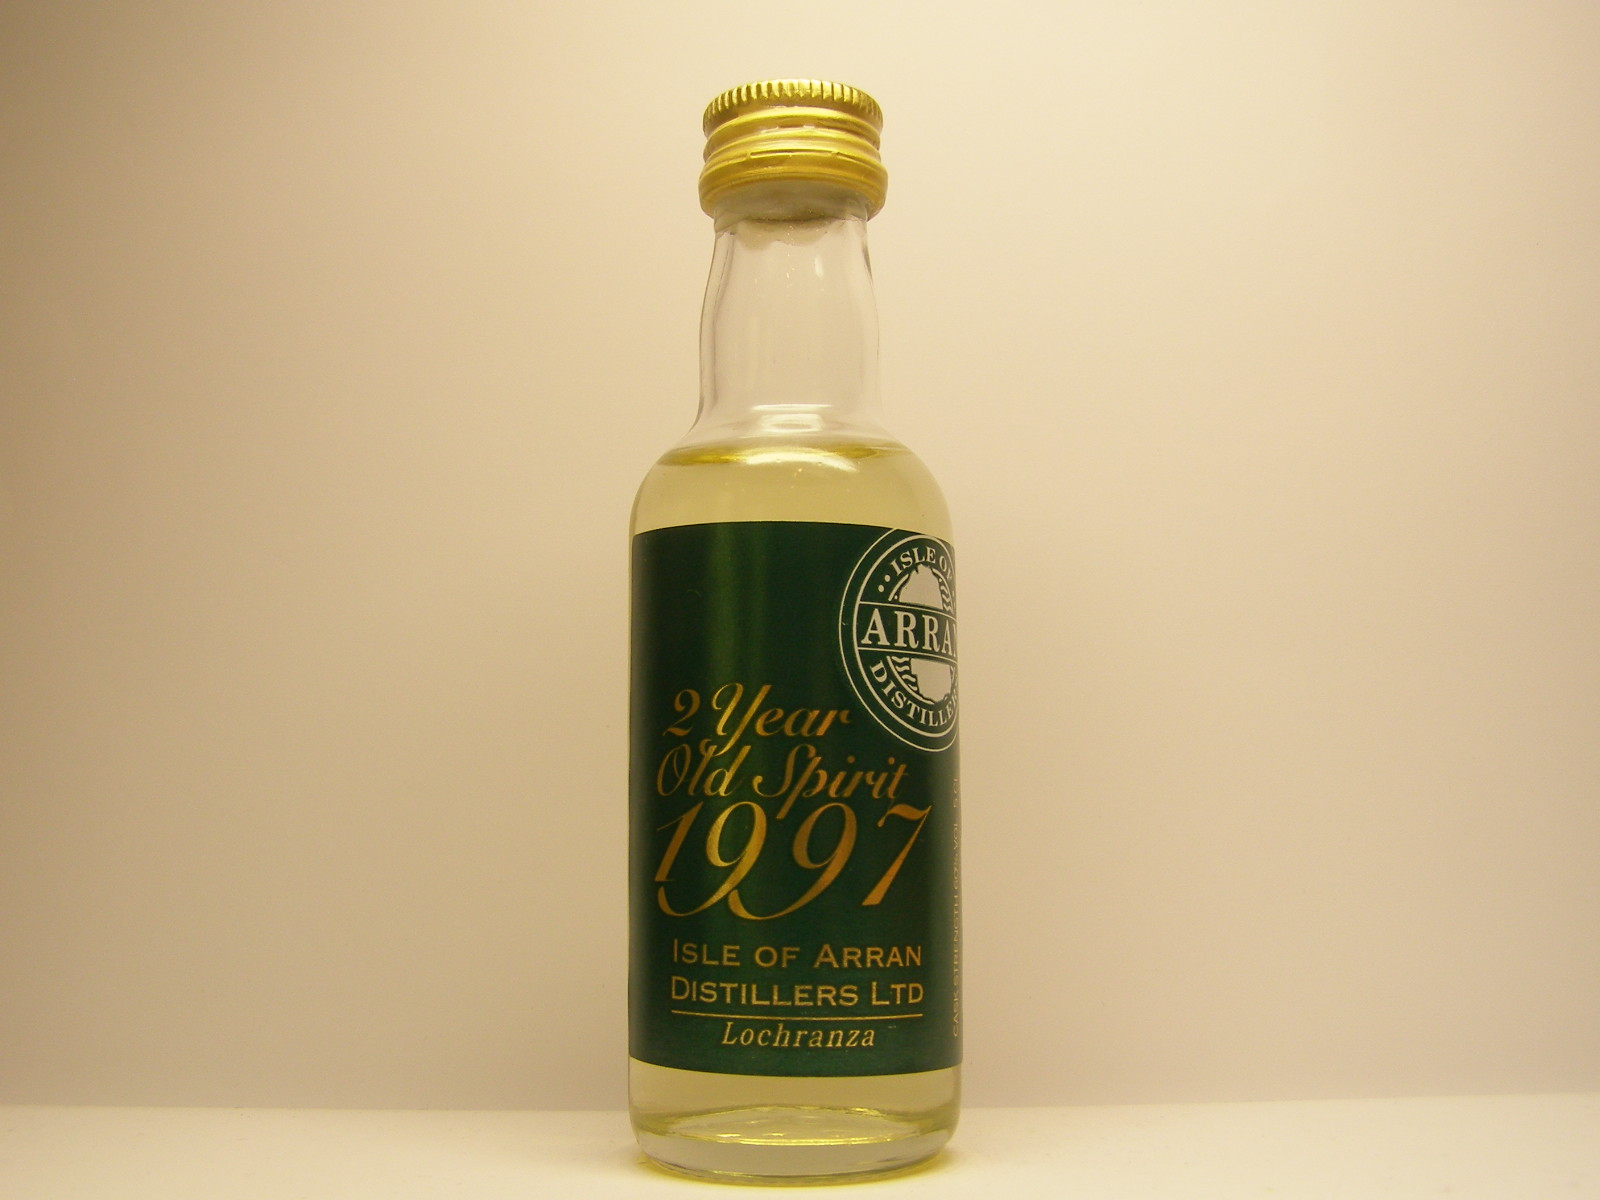 2yo Old Spirit 5CL. 60%VOL.